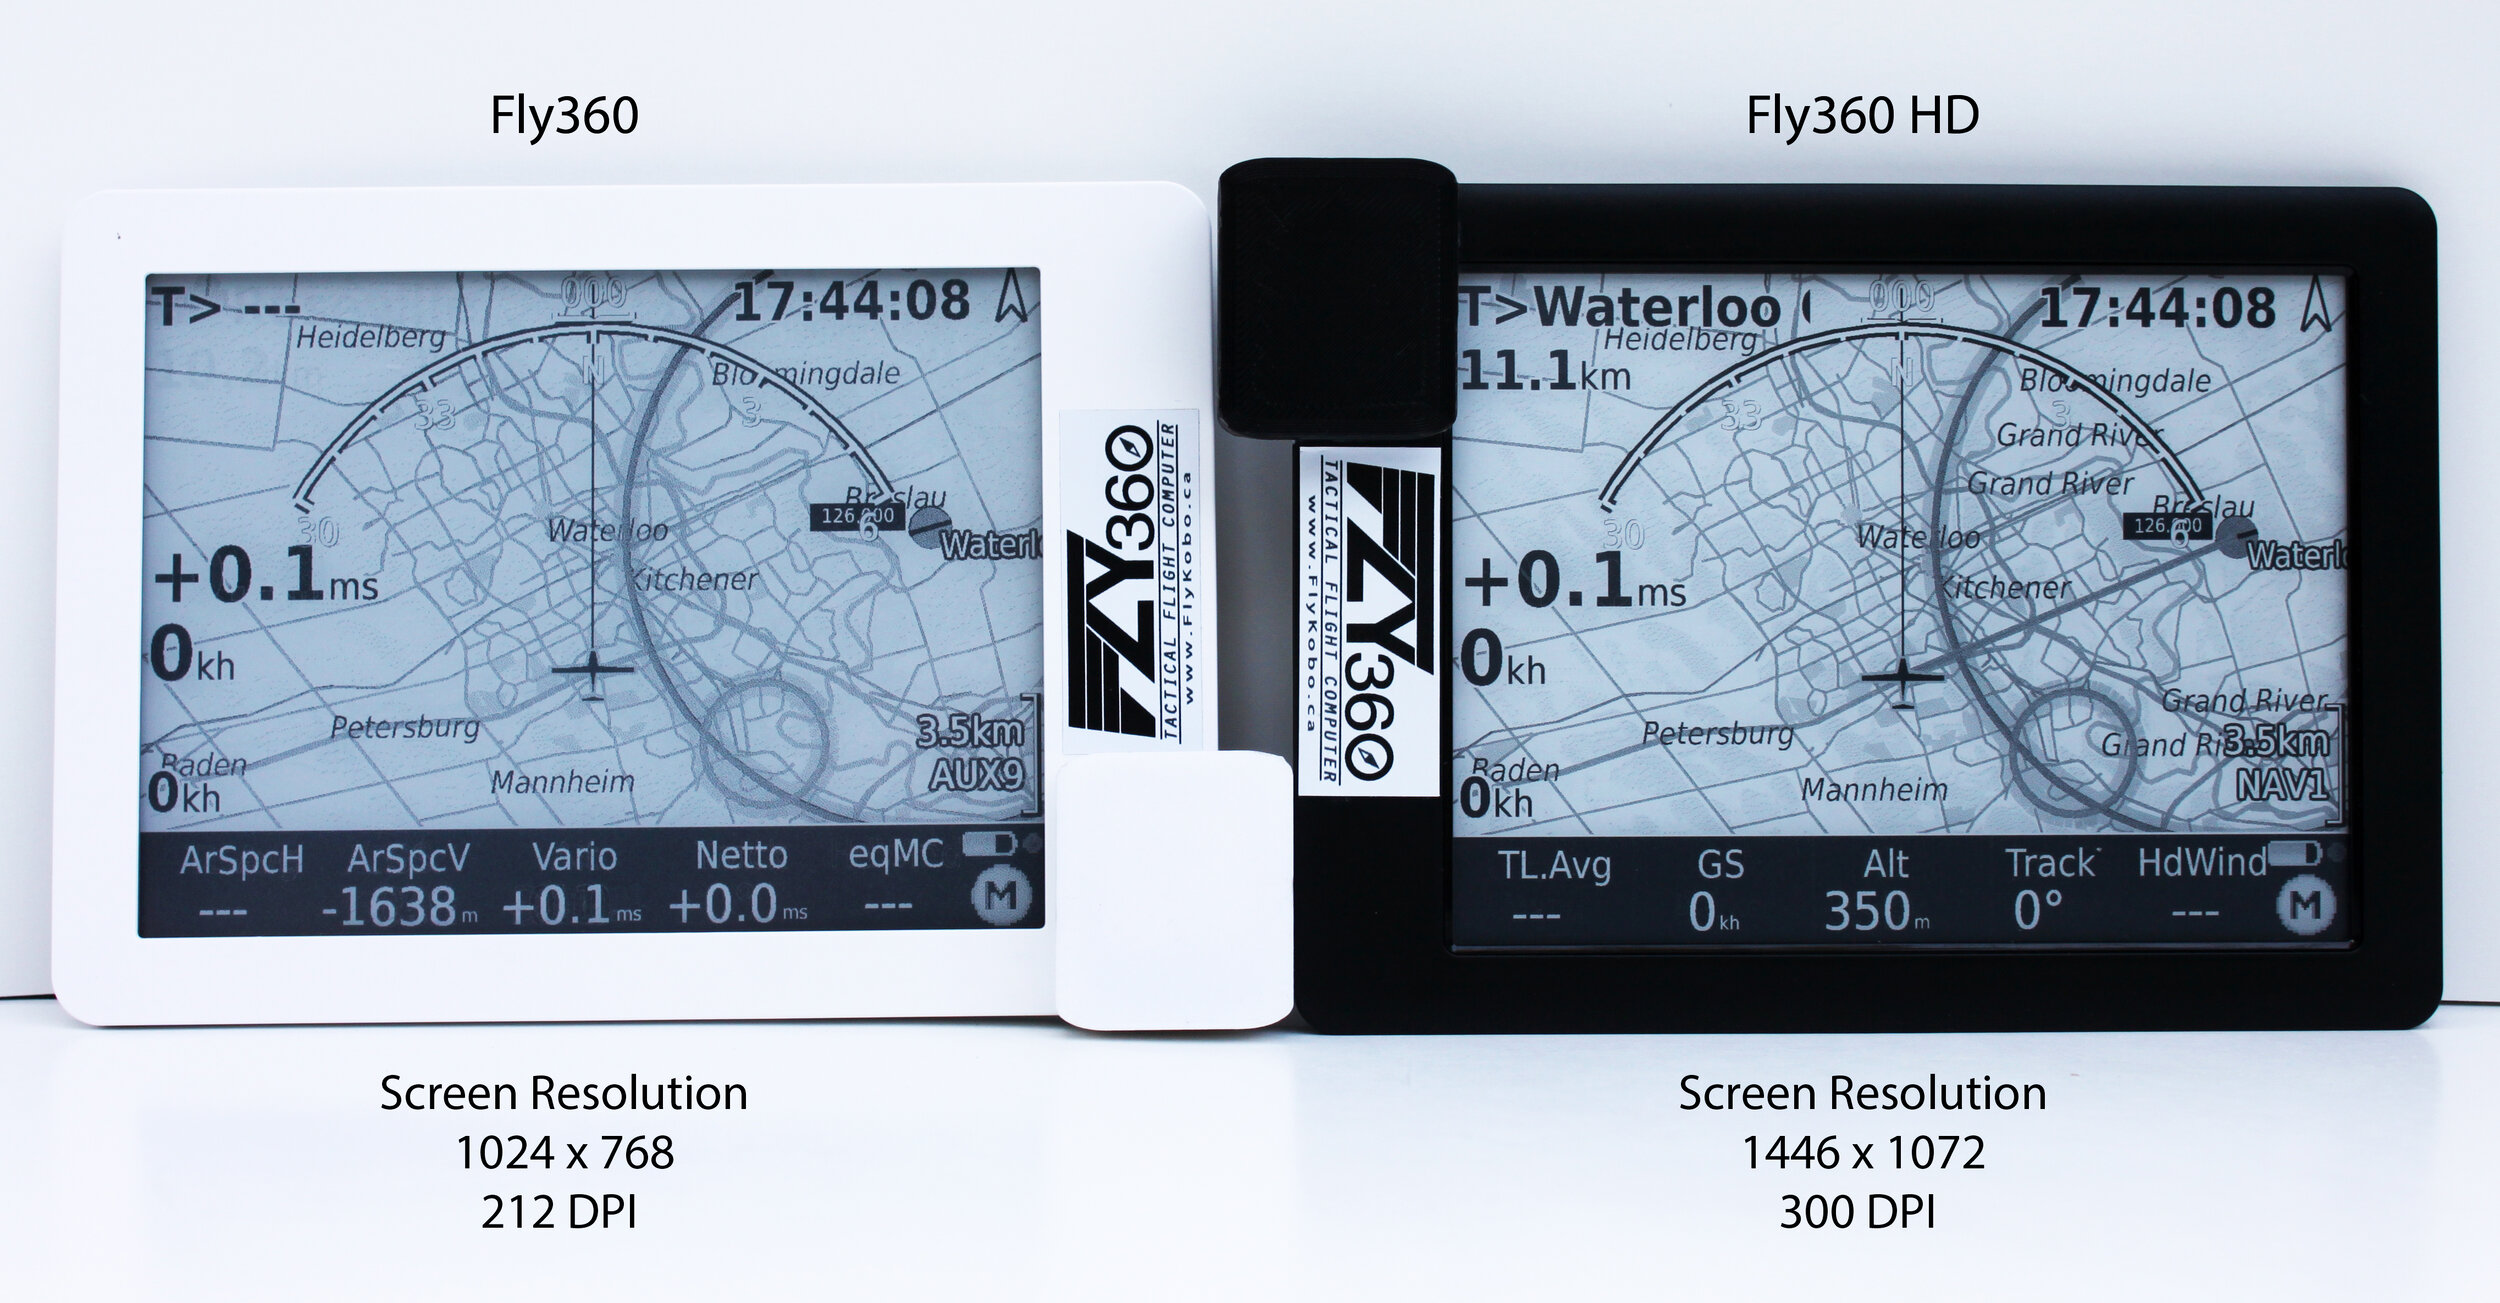 Side by side comparison between the Fly360 (Left) and the New Fly360 HD (Right)